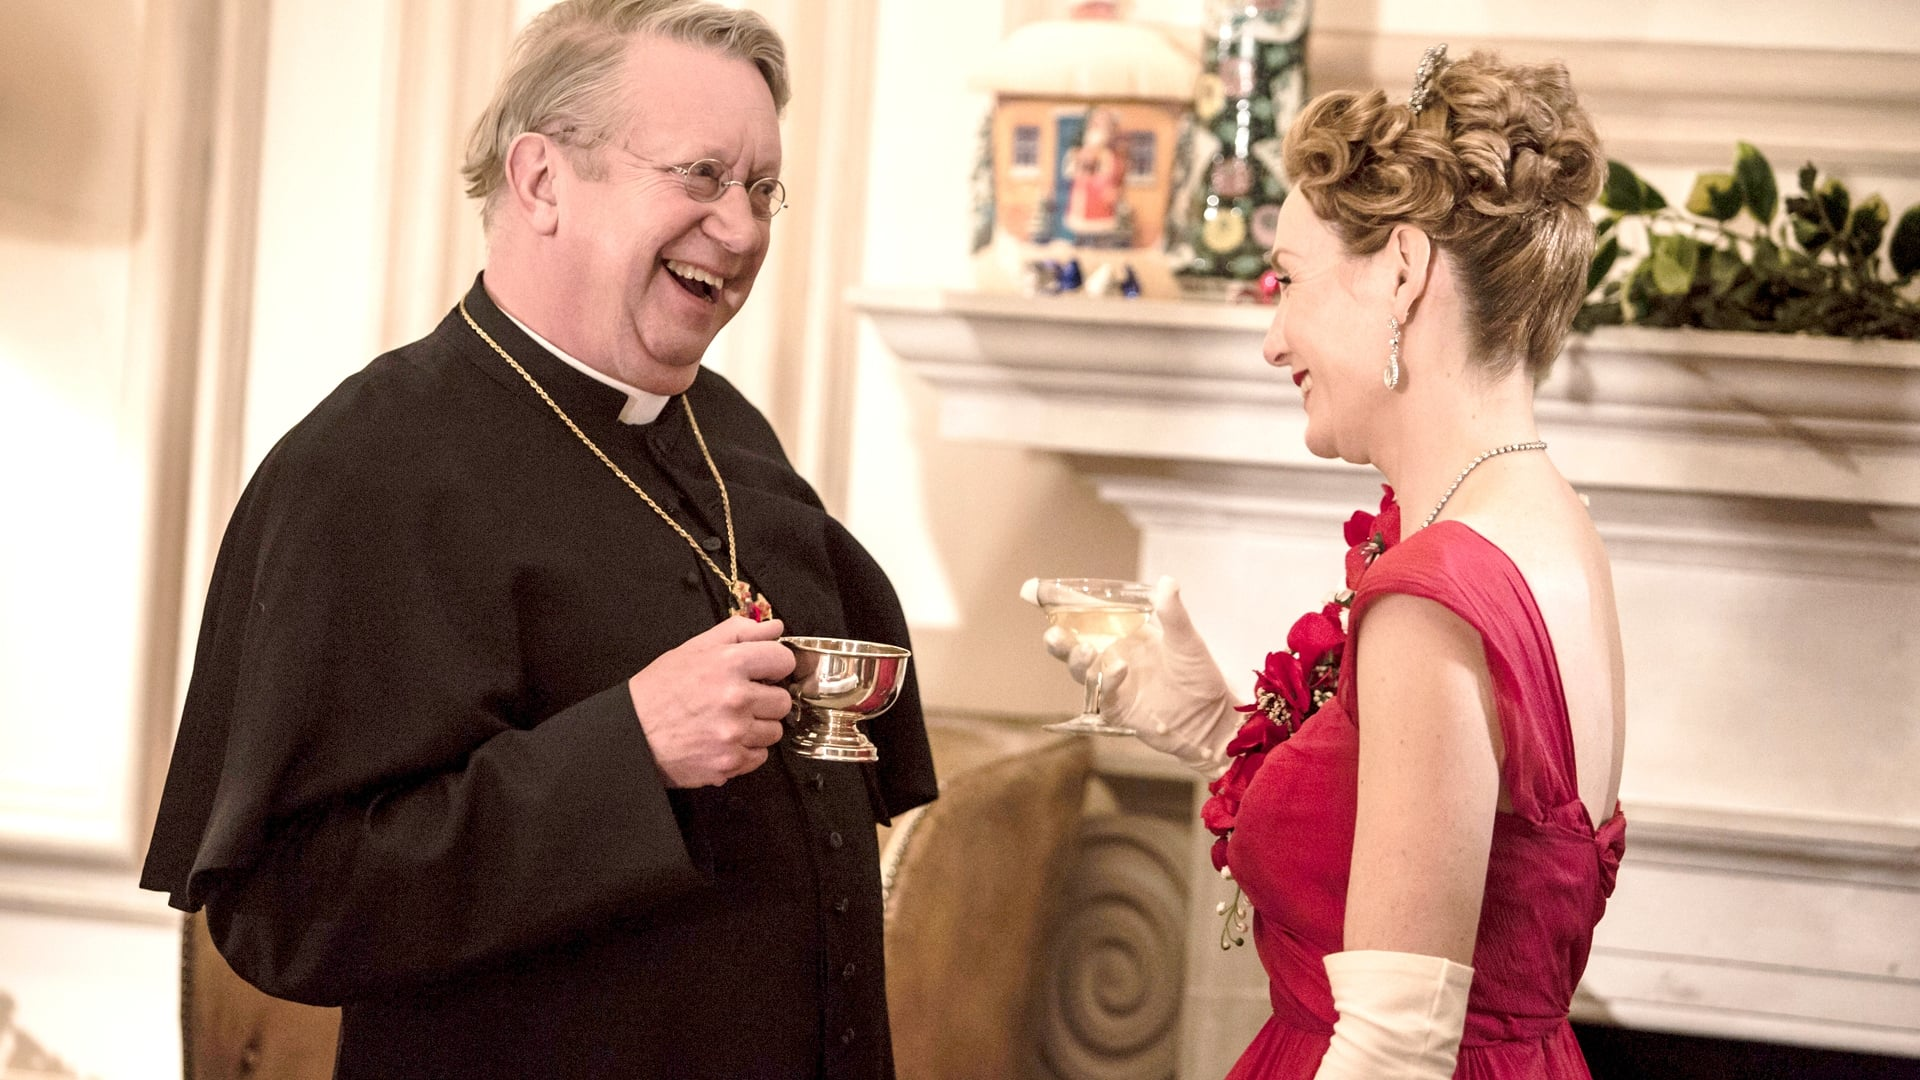 Father Brown - Season 5 Episode 1 : The Star of Jacob